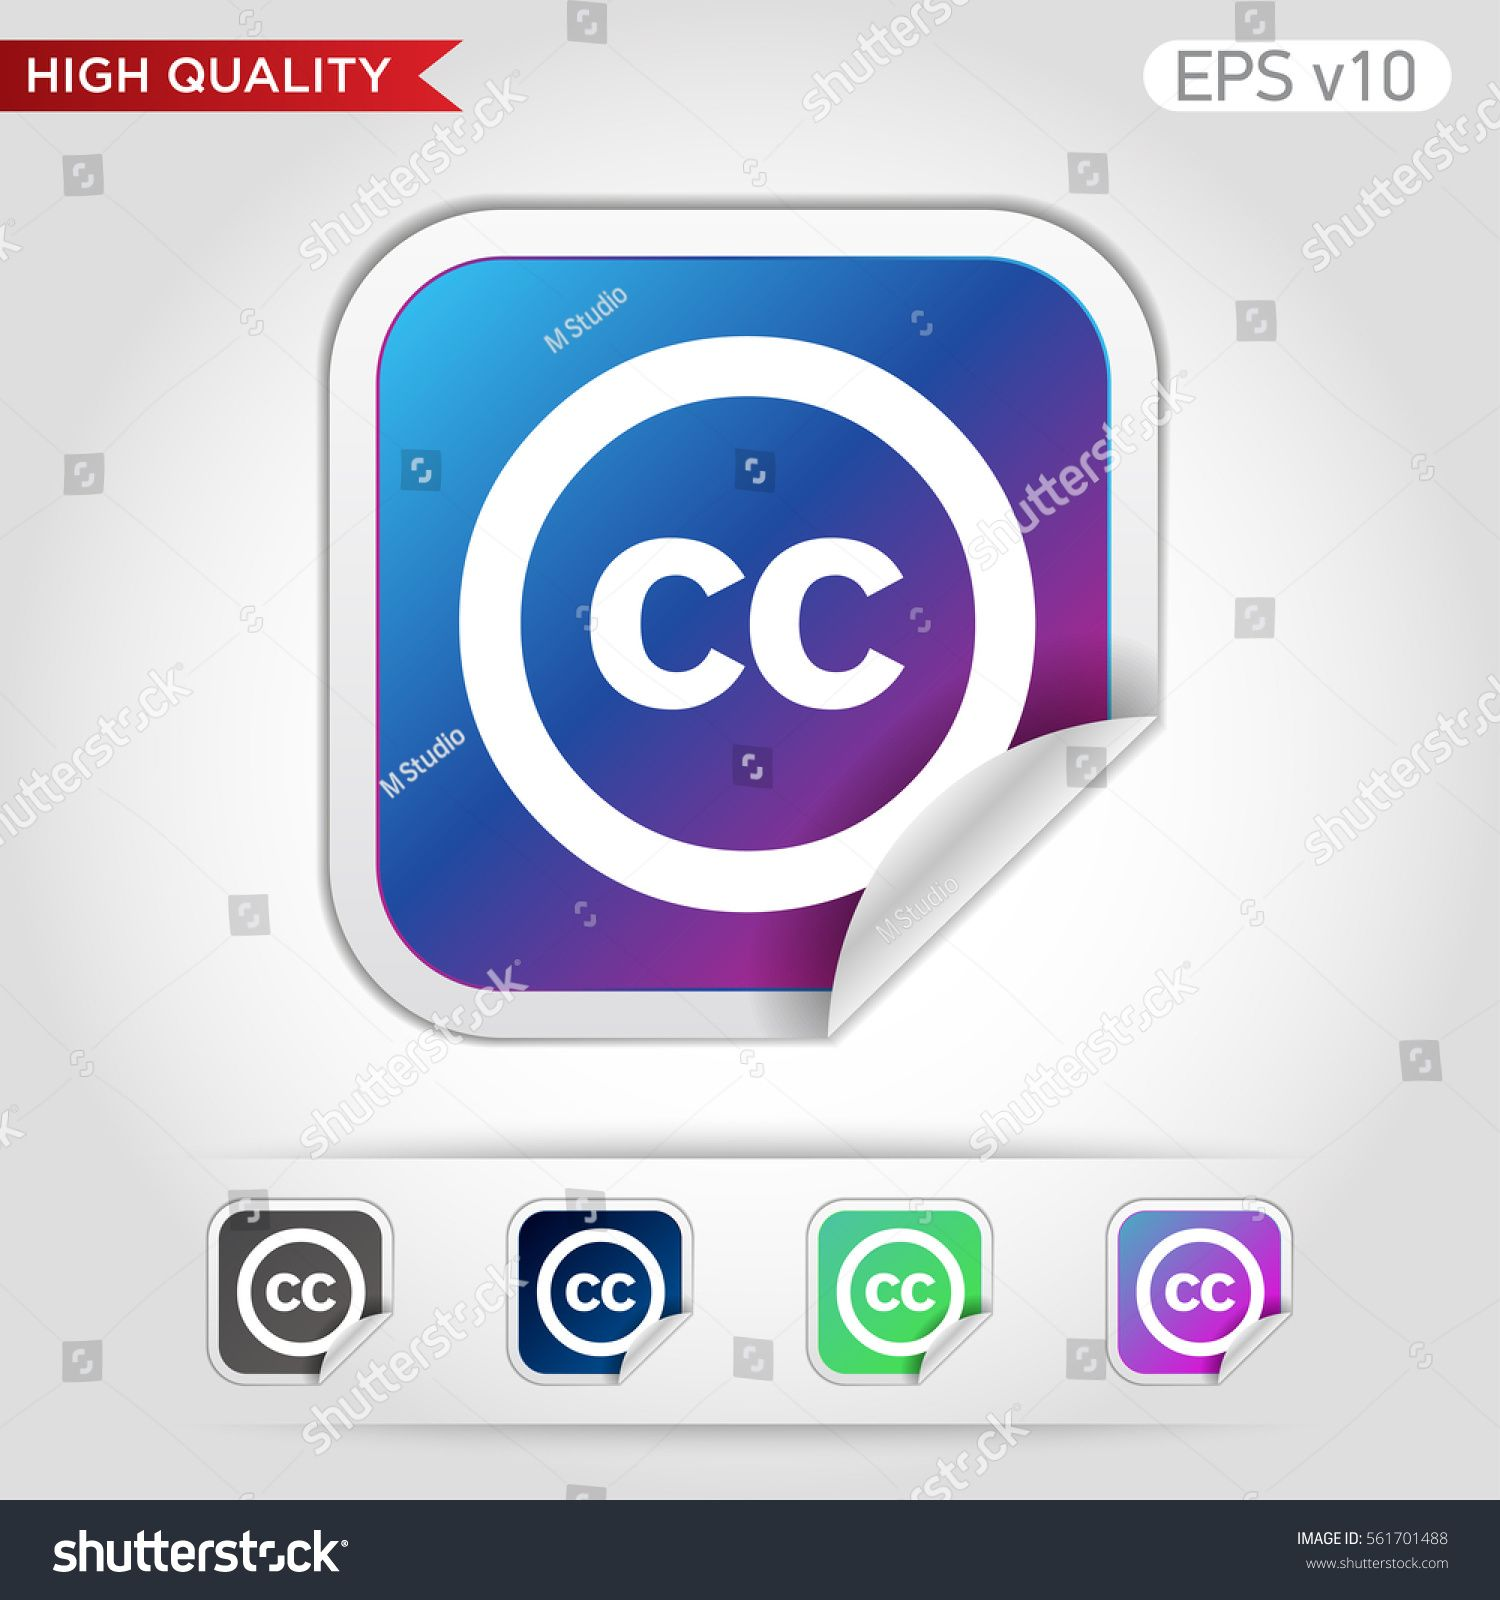 Colored icon or button of CC symbol with background Ad